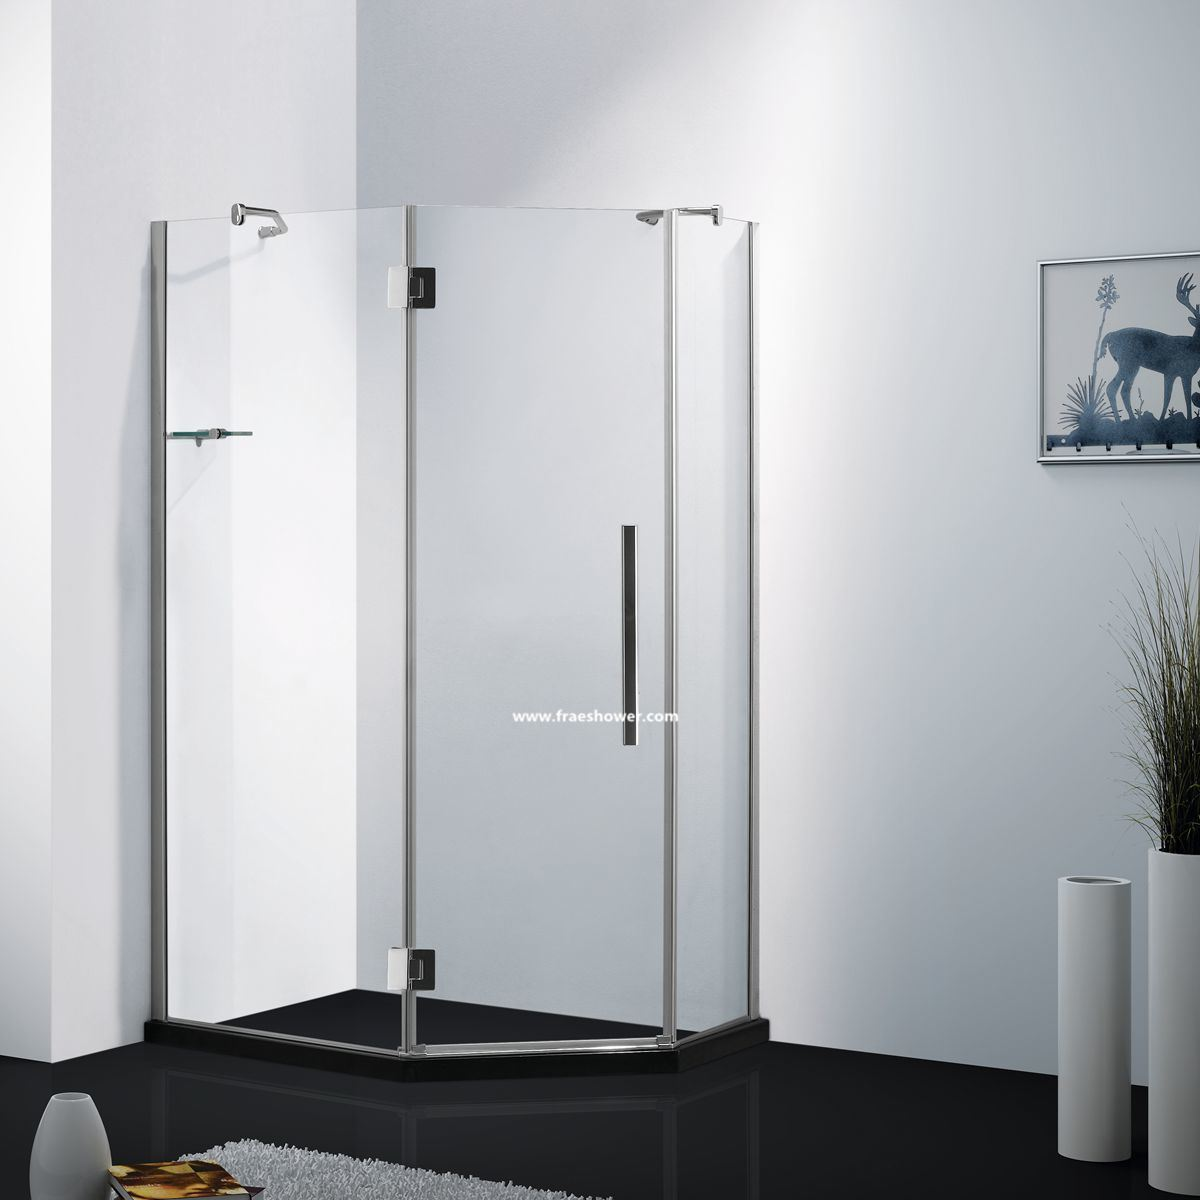 Hot Item 8mm Or 10mm Frameless Luxurious Diamond Shape Corner Shower Door With 135 Degree Big Hinge